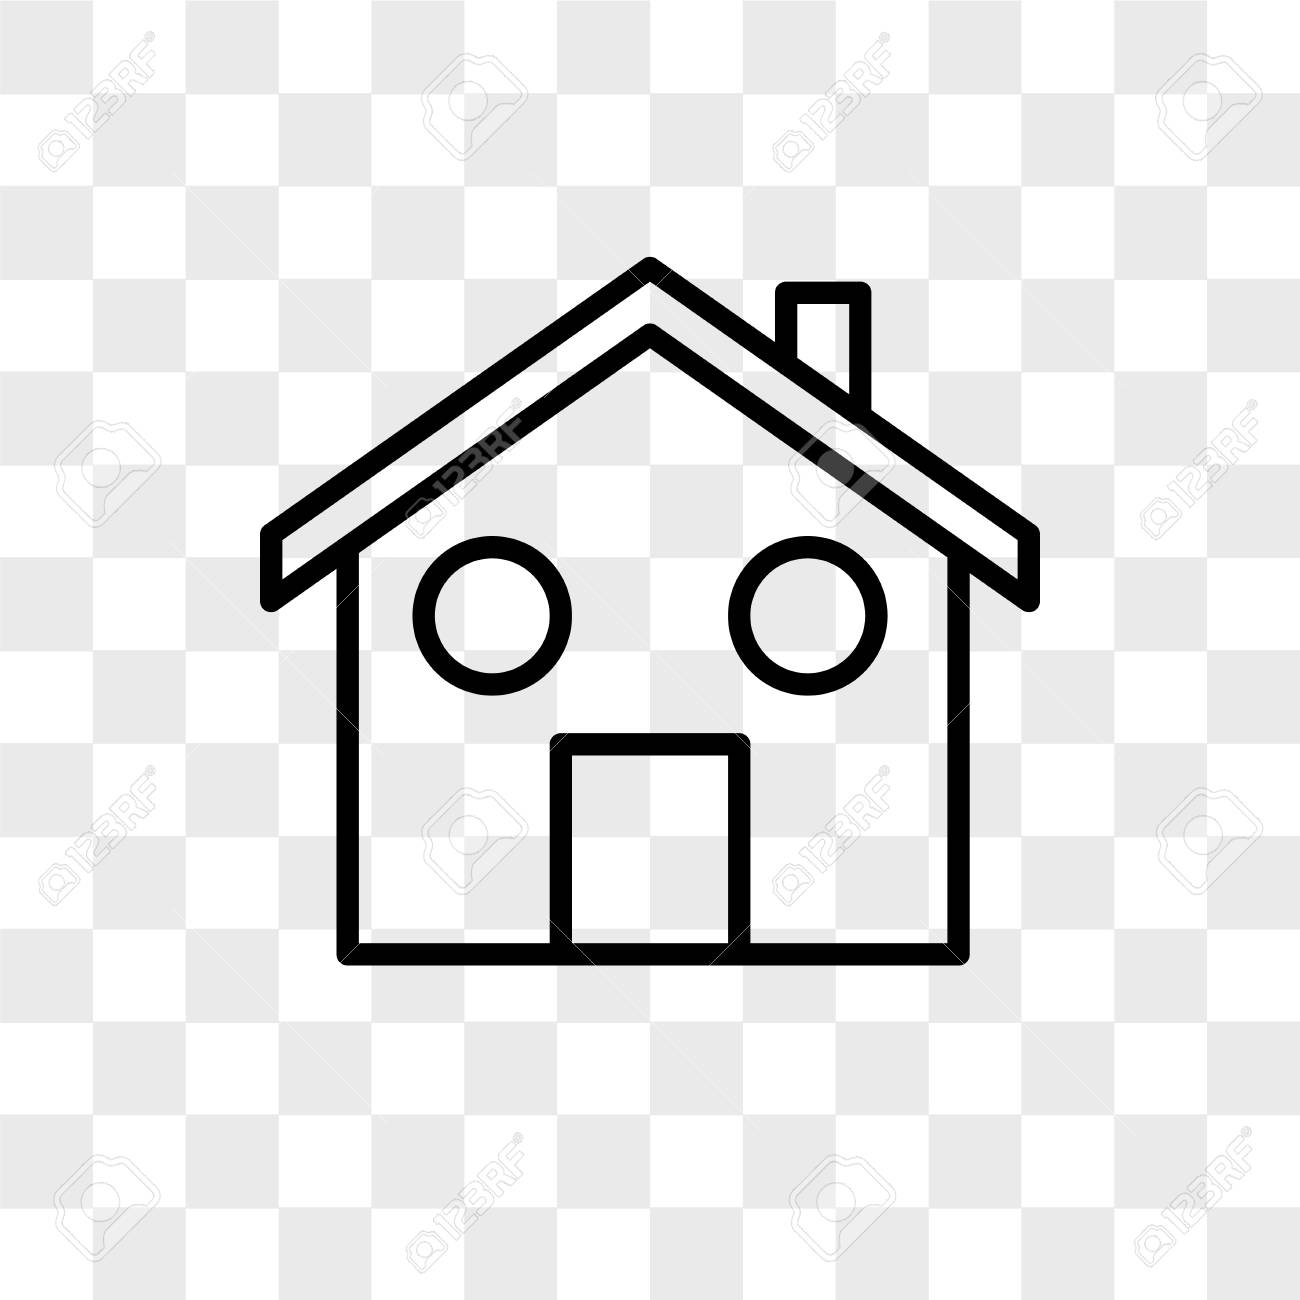 Home Vector Icon Isolated On Transparent Background Home Logo Royalty Free Cliparts Vectors And Stock Illustration Image 108800837